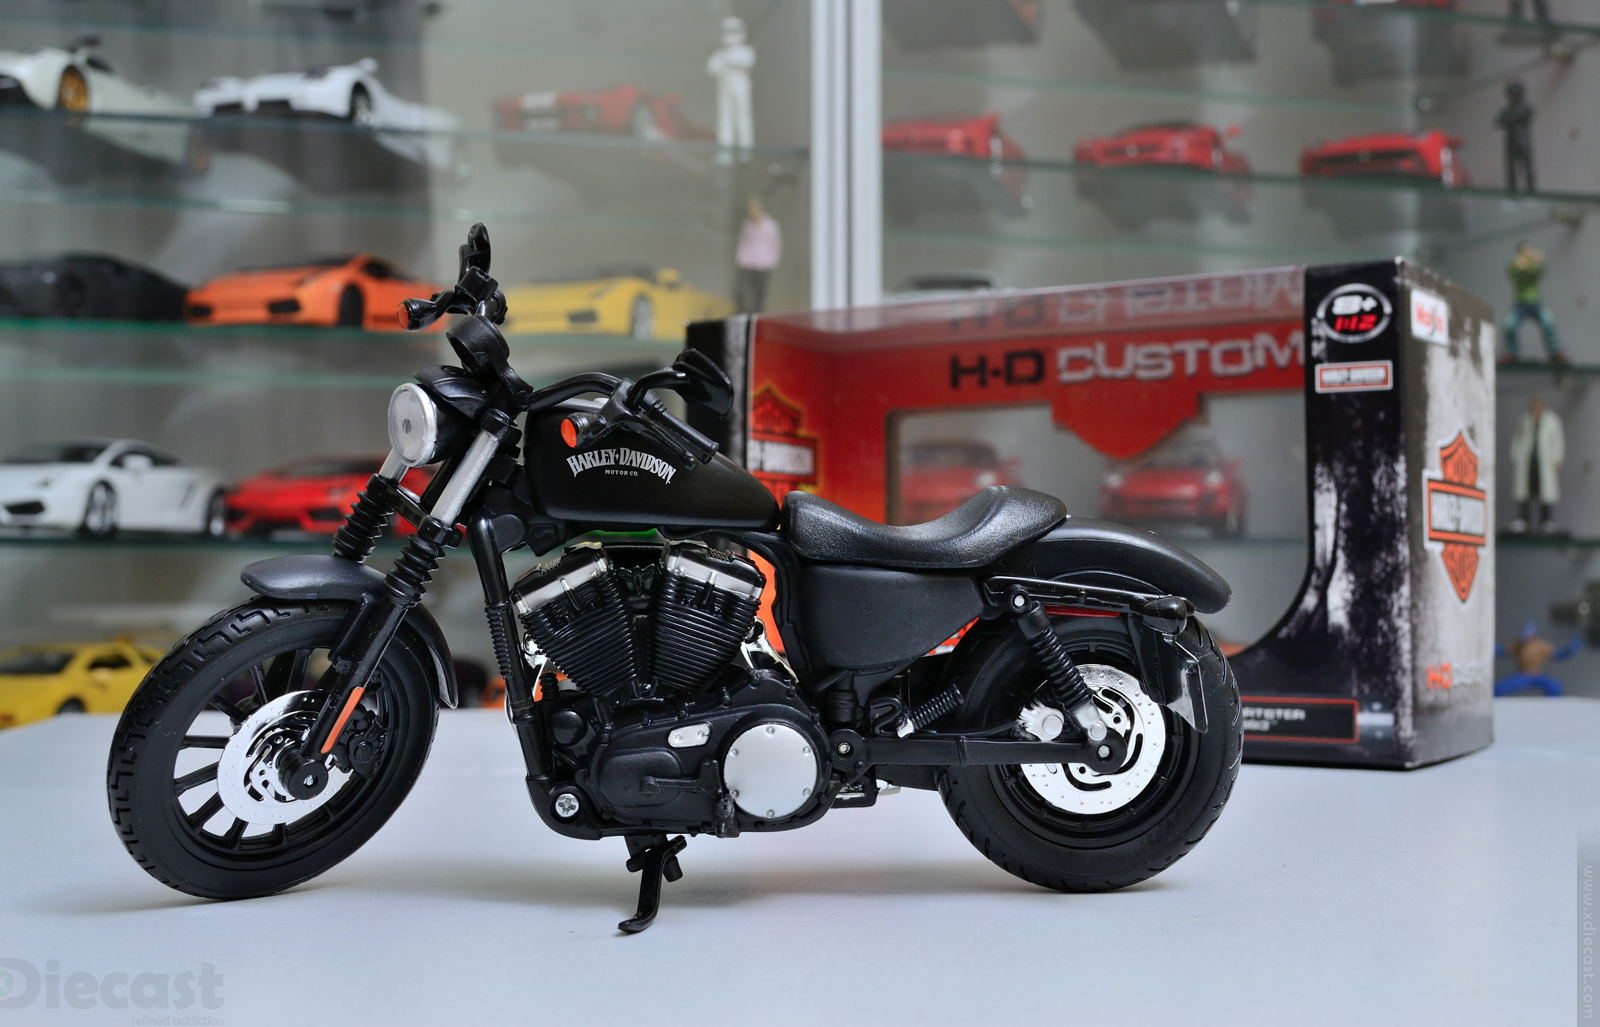 Maisto 1:12 Harley Davidson 2014 Sportster Iron 883 - Out of Box